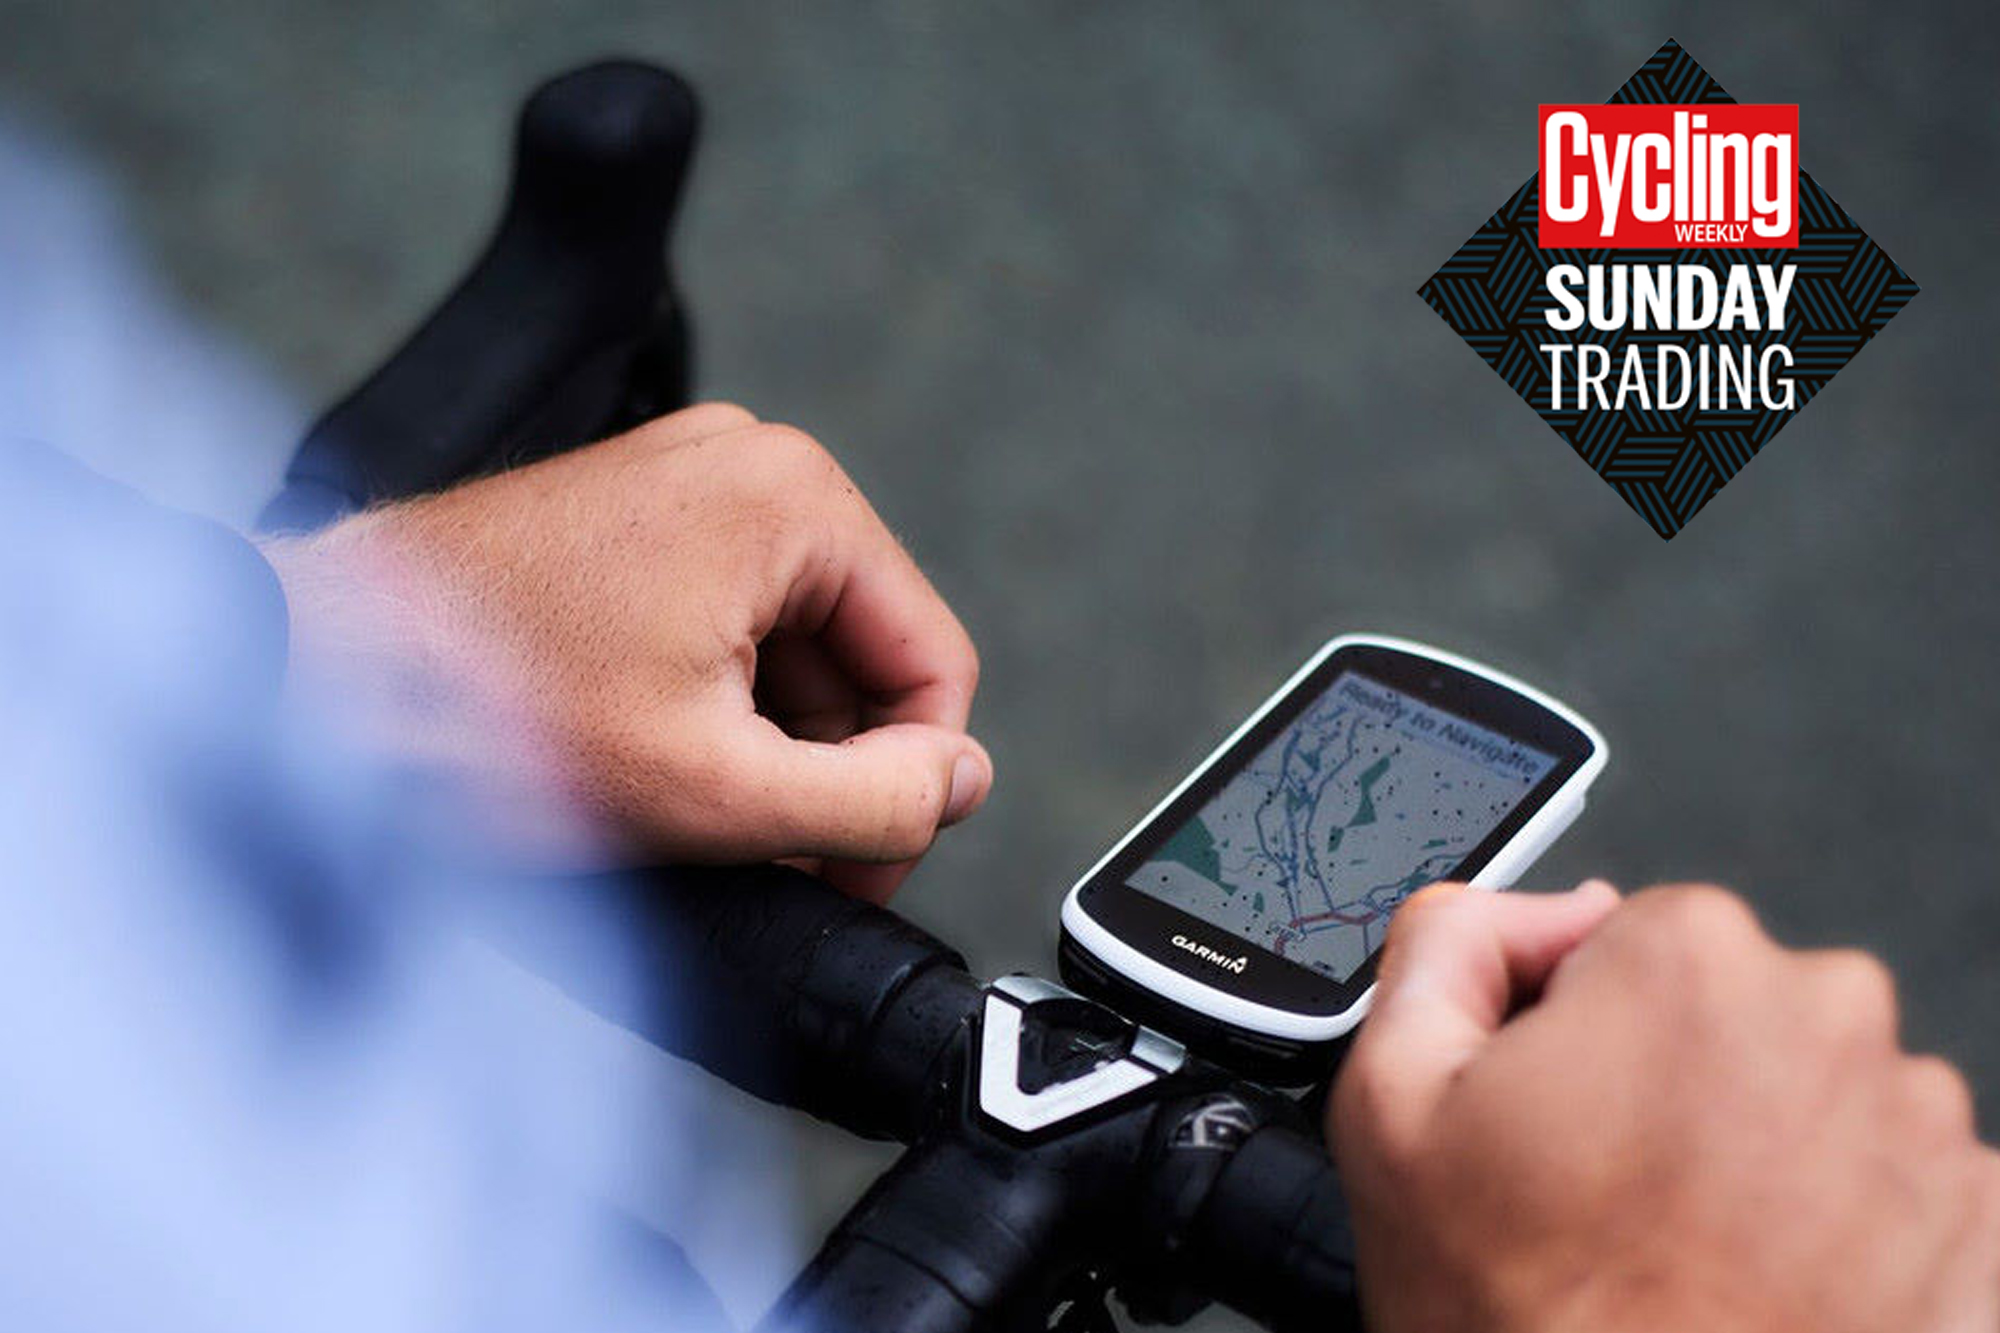 Sunday trading: Save £200 on a Garmin Edge 1030 - Cycling Weekly